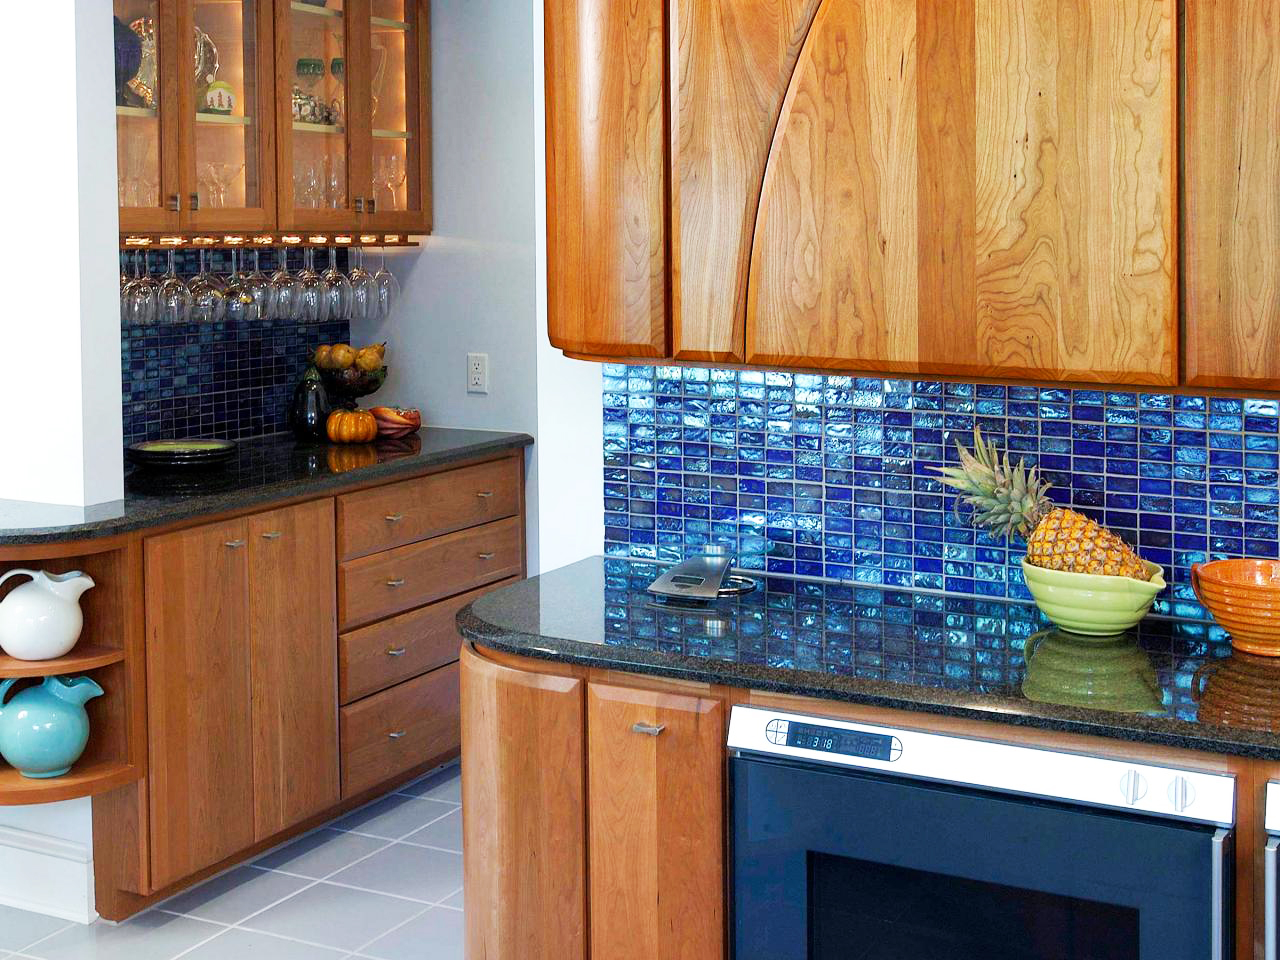 How Much Does It Cost To Renovate A Kitchen Traditional Kitchen Design White Hanging Wooden